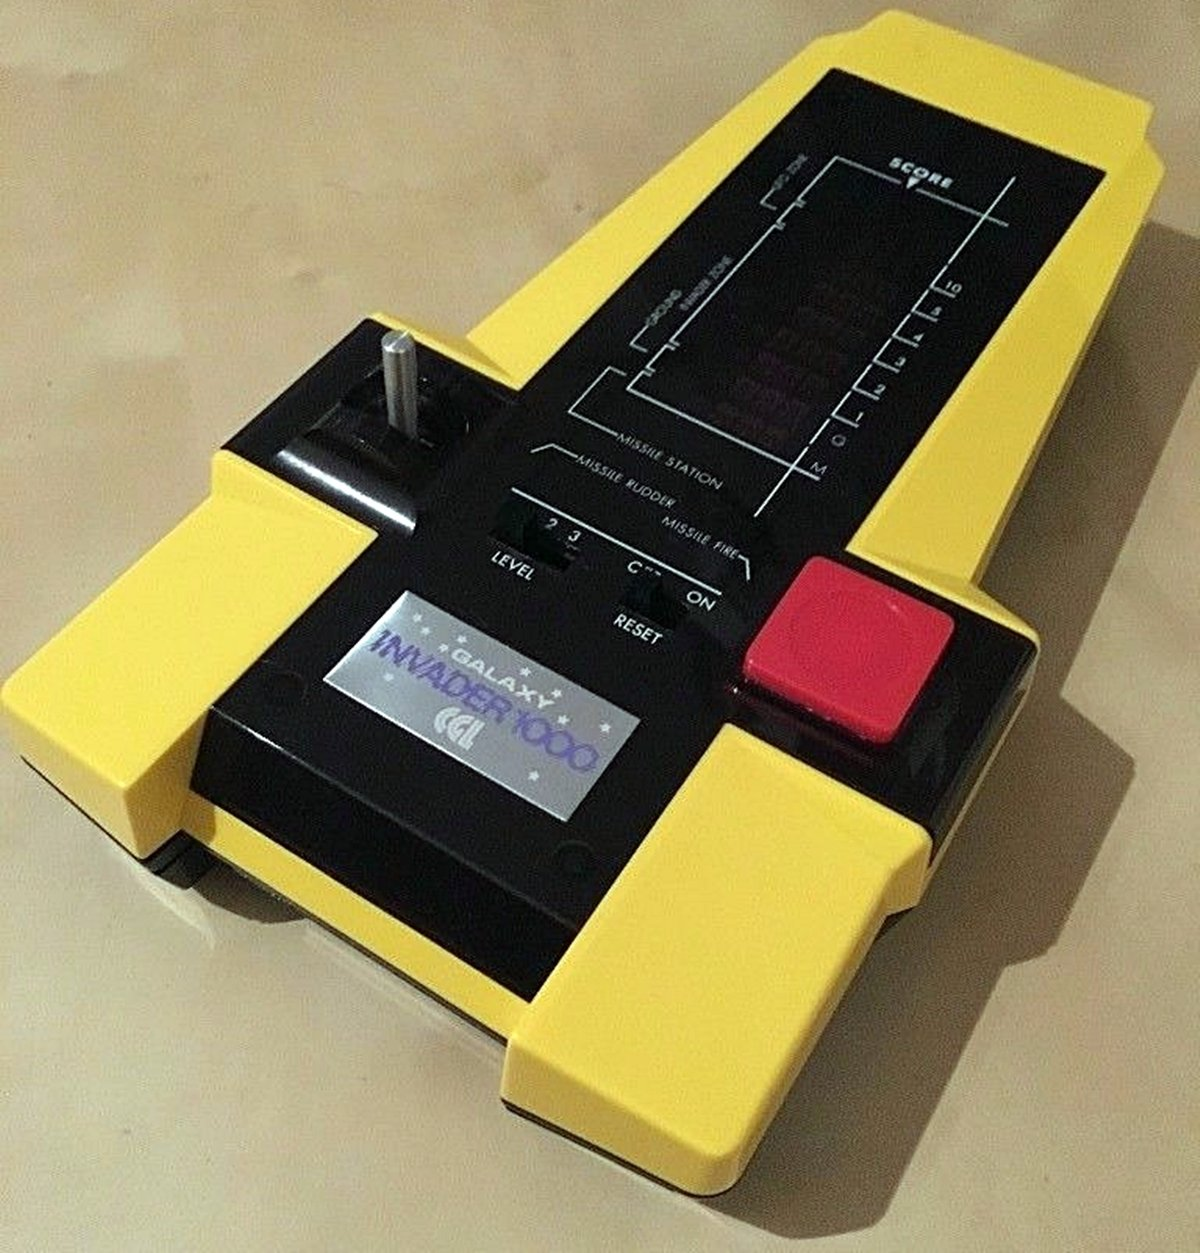 CGL1 12 Of The Best Handheld Electronic Games From The 1980s